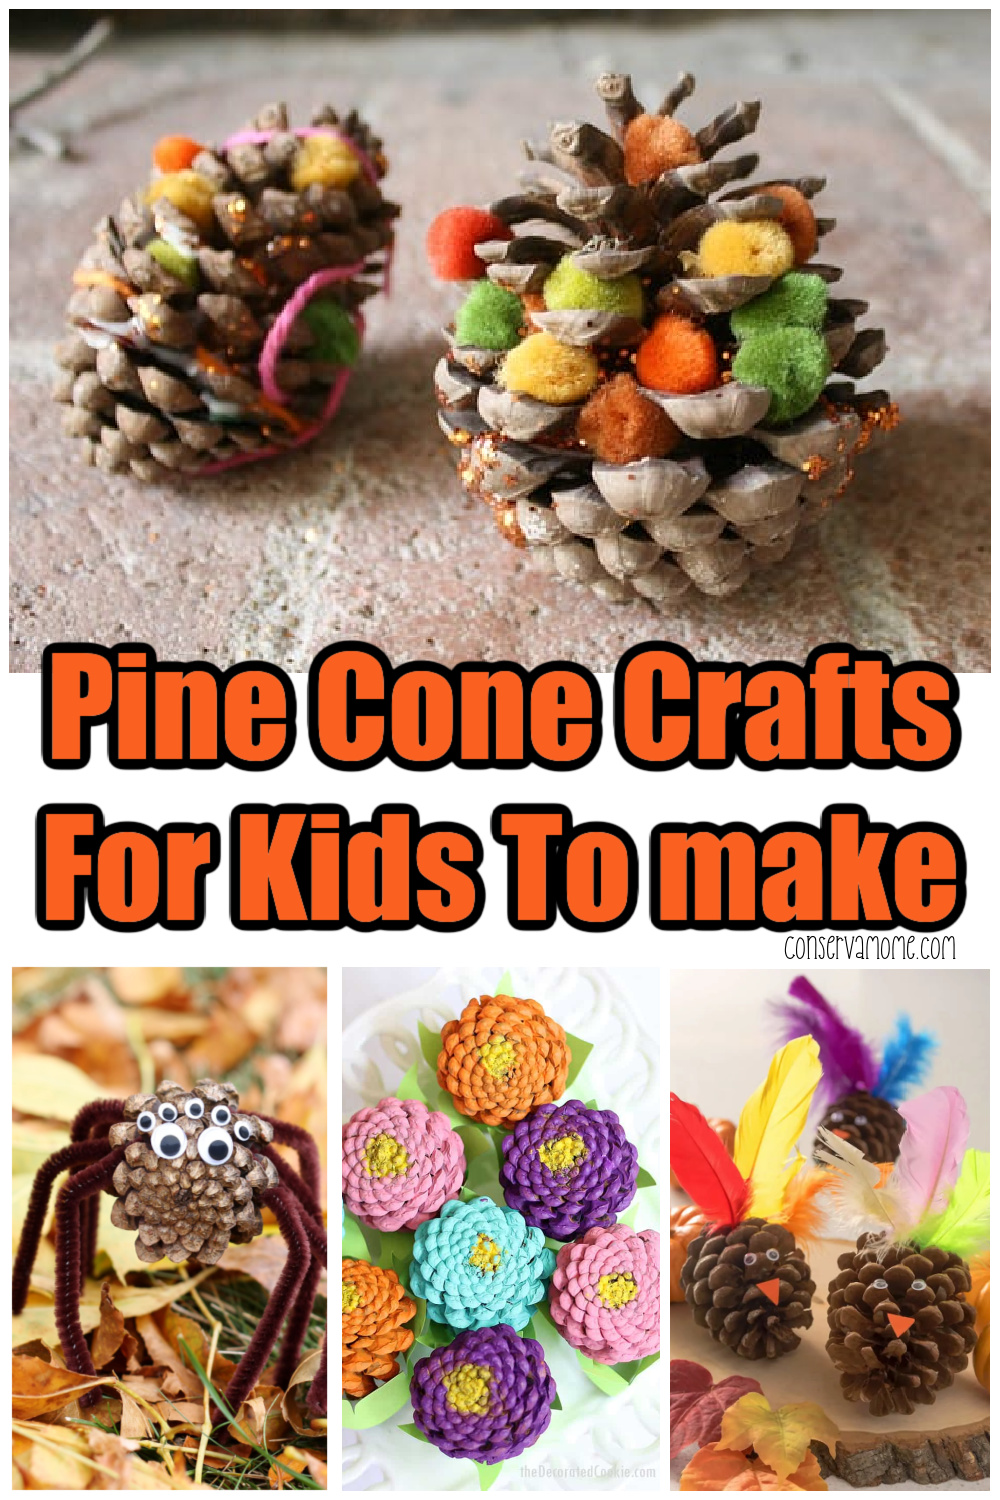 Pine Cone Crafts For Kids To make